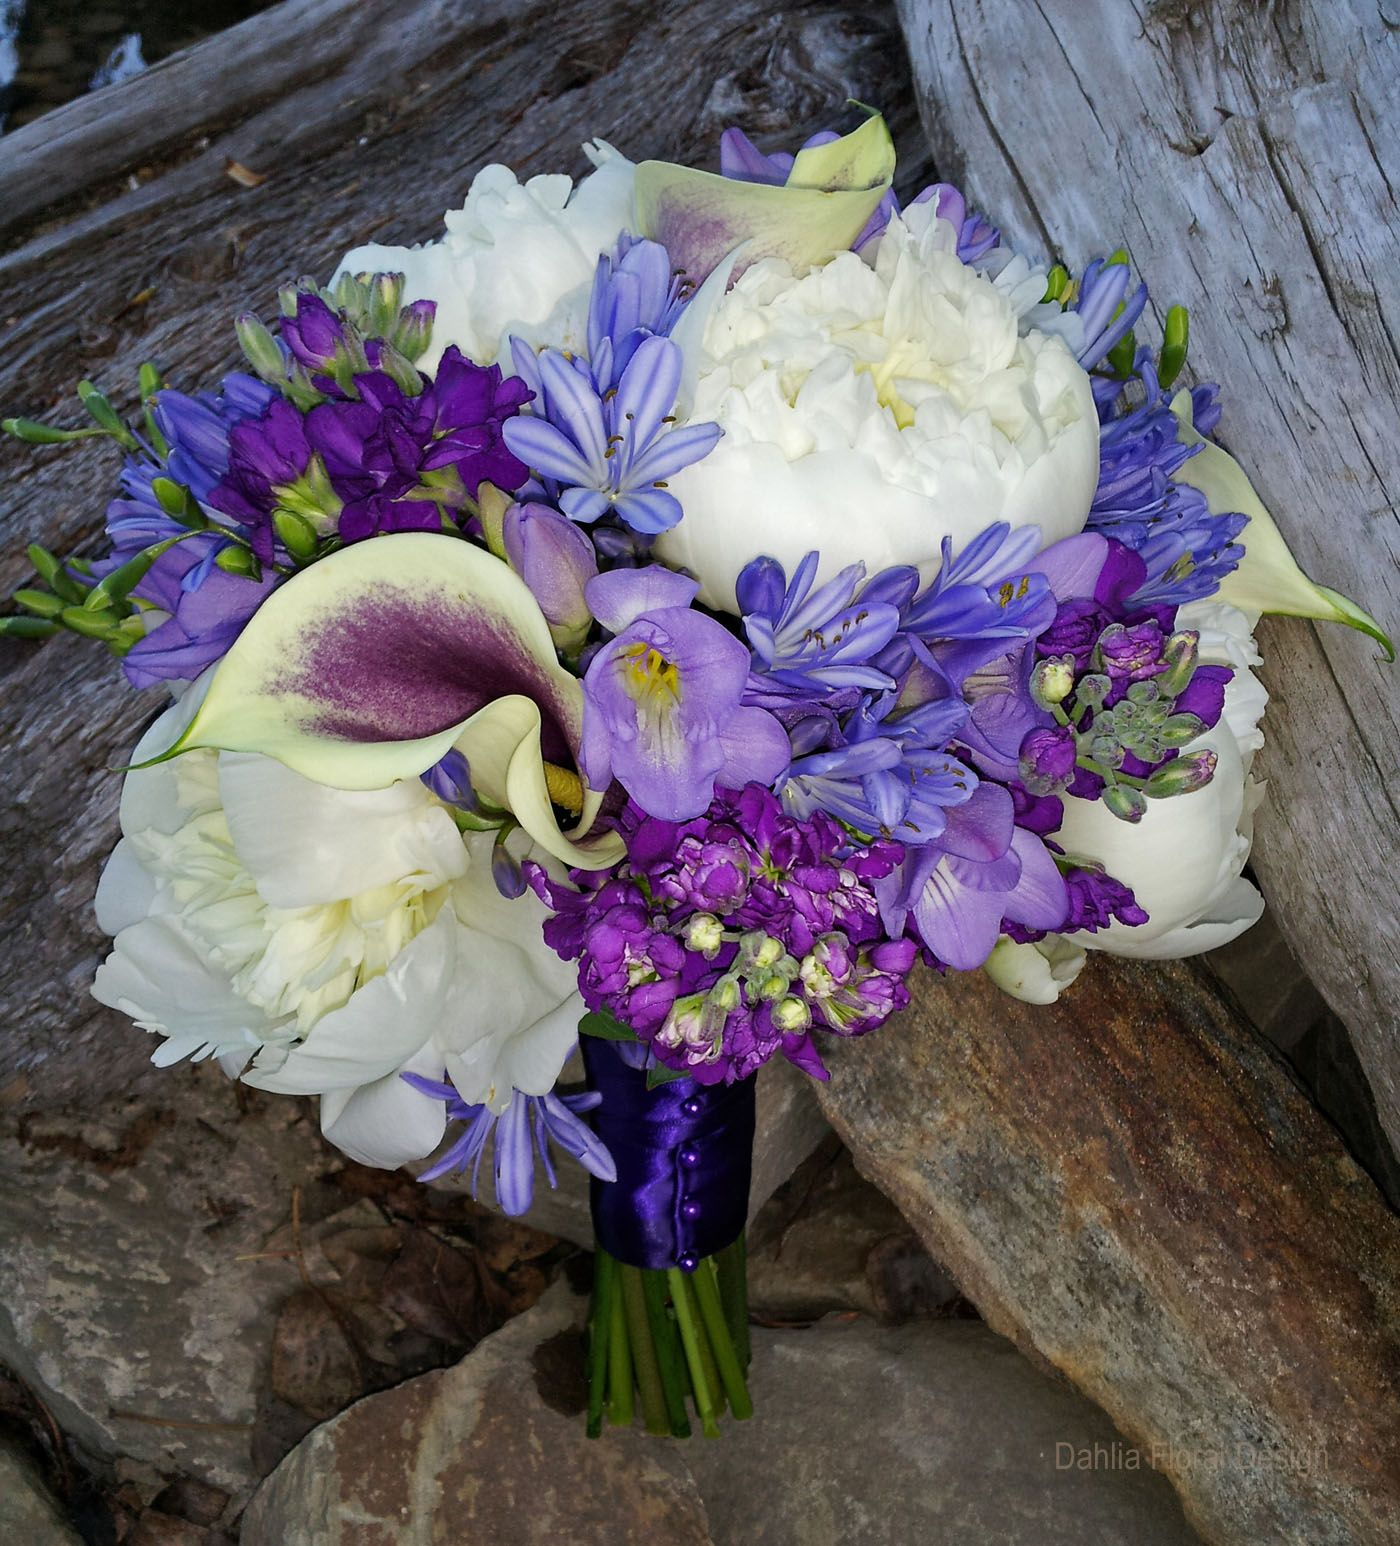 Need Some Bridal Bouquet Inspirationhelp Pretty Please